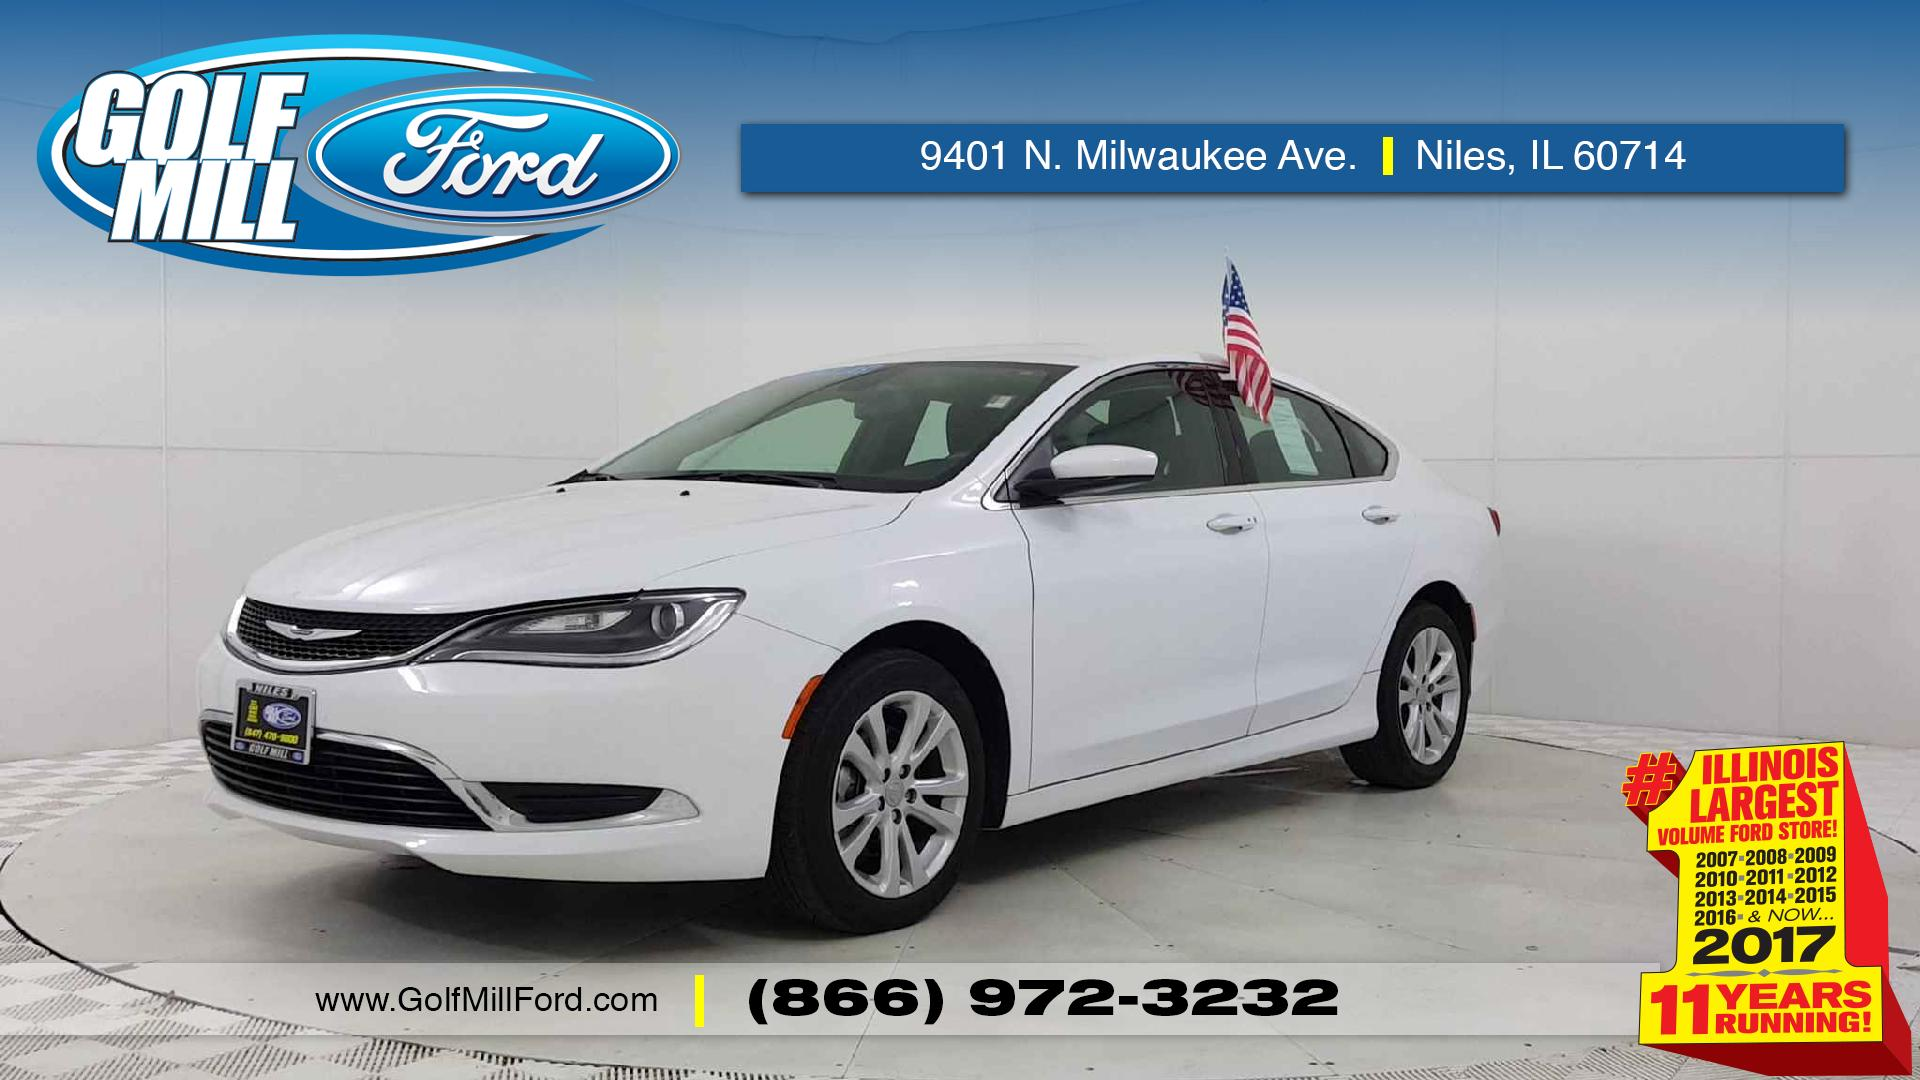 Used Chrysler For Sale In Niles Il Golf Mill Ford 200 Fuel Filter 2016 Limited